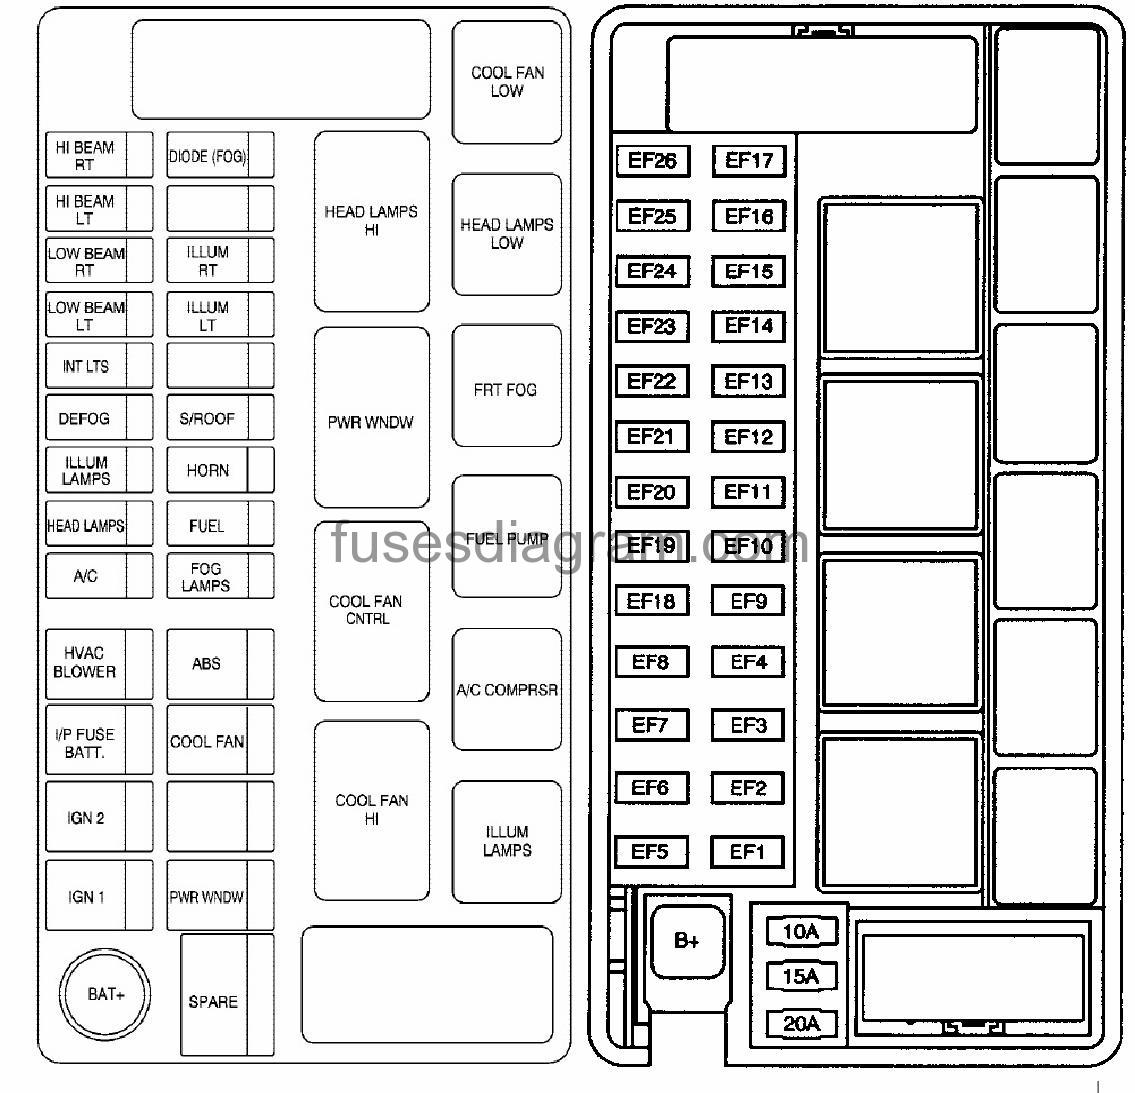 Fuse Box Chevrolet Aveo 2009 Chevy Diagram Image Details Type 1 Legend